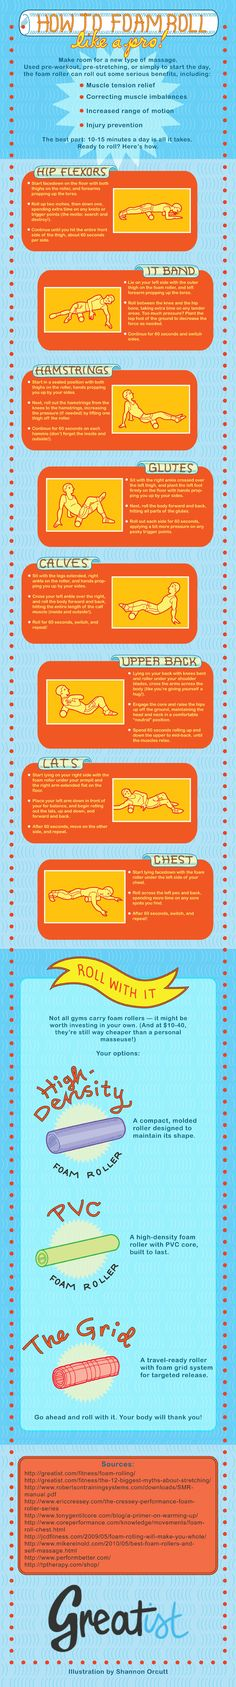 Want to improve flexibility, performance, and reduce injuries? Get to know the foam roller! This infographic covers all the essential moves to rock (n' roll) that next workout. I love mine :)